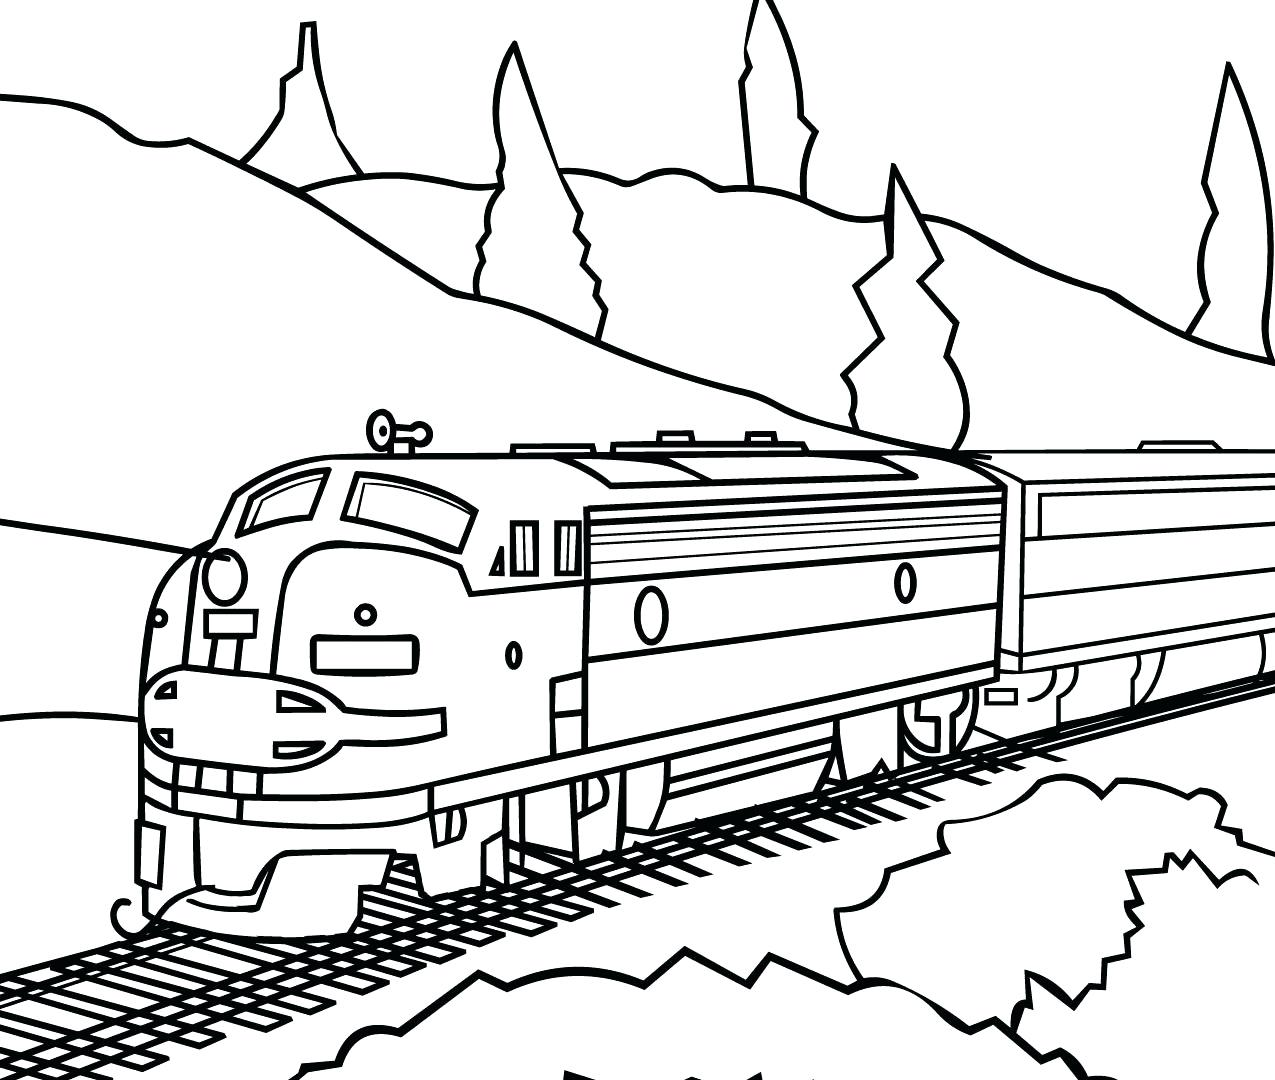 Train Caboose Drawing At Getdrawings